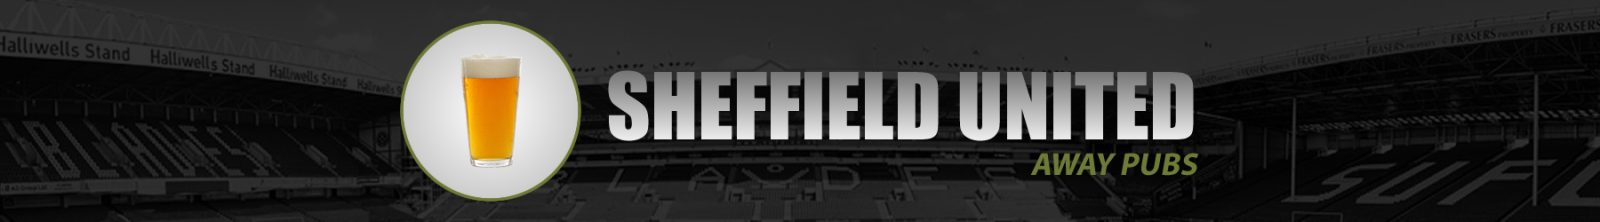 Sheffield United Away Pubs